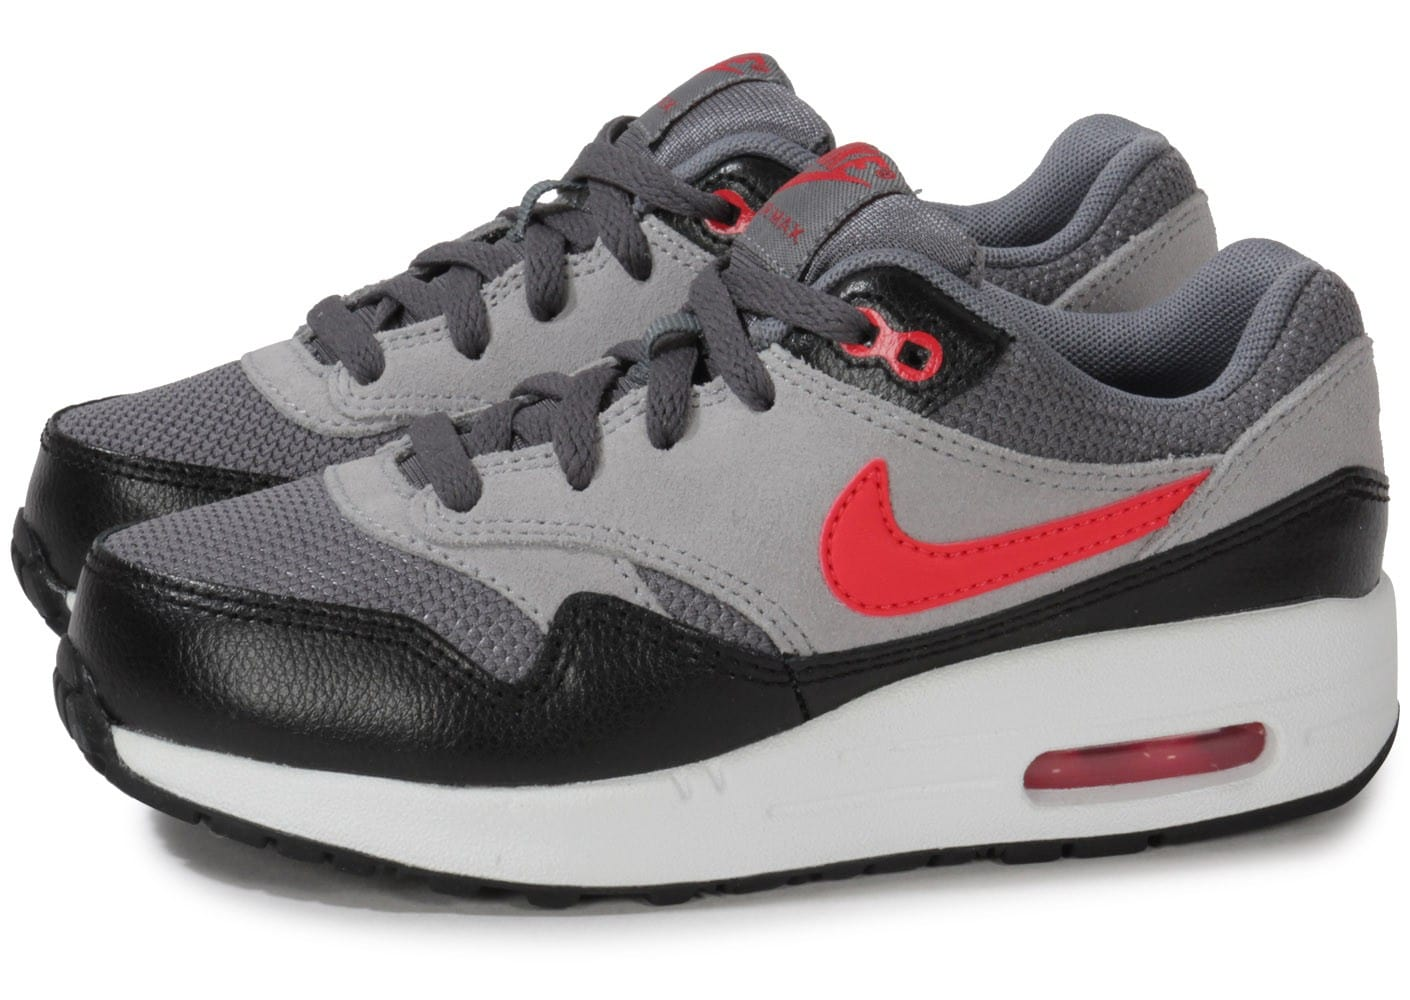 nike air max 1 enfant grise team red chaussures chaussures chausport. Black Bedroom Furniture Sets. Home Design Ideas